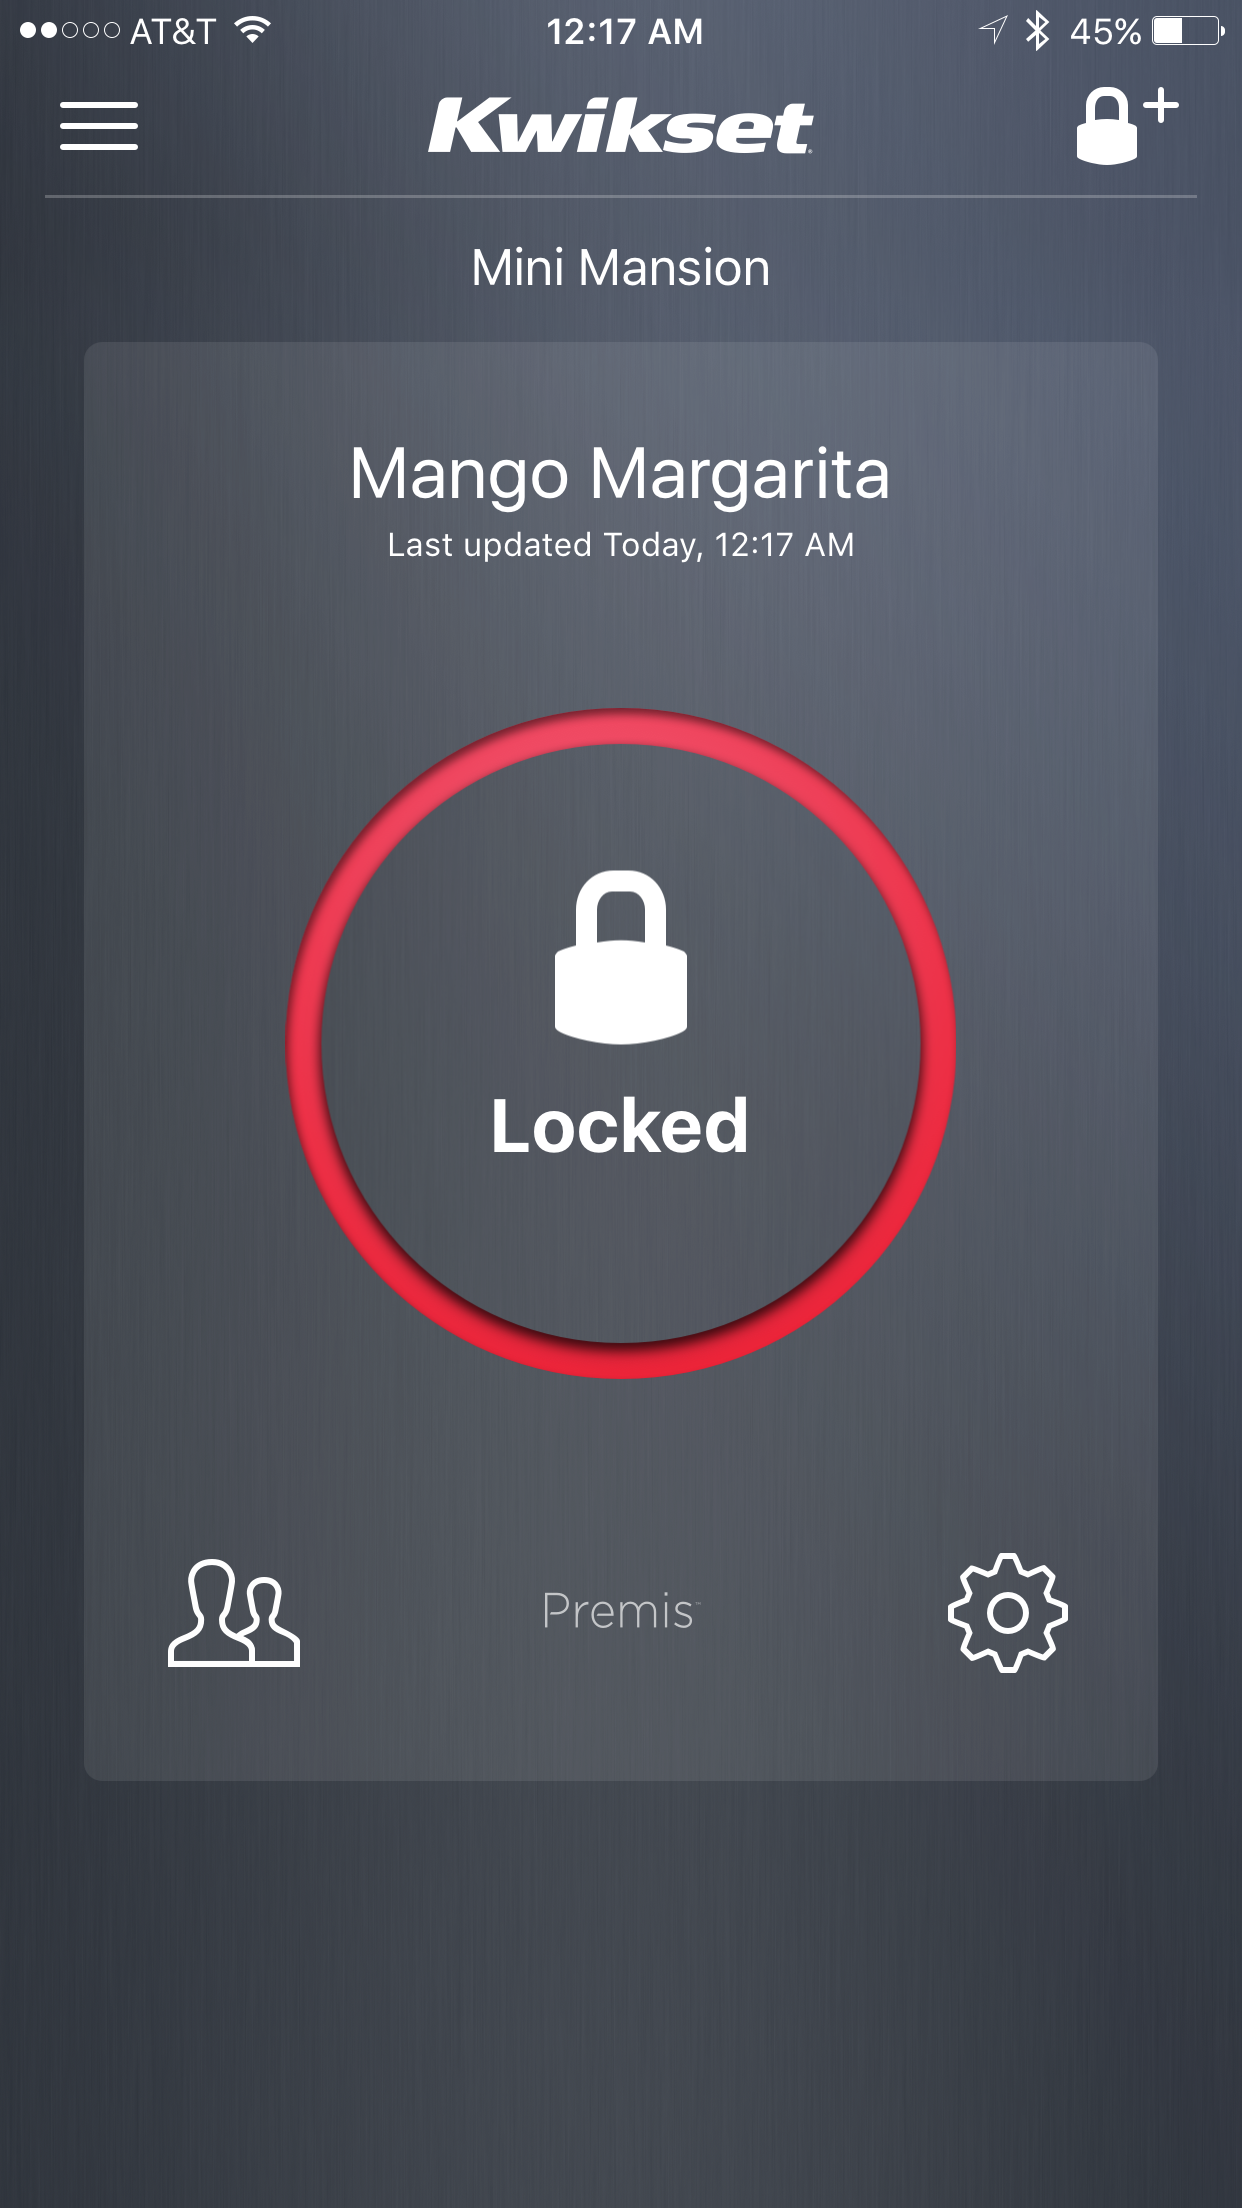 I like to name security devices funny names, to prevent accidental voice activation by others.